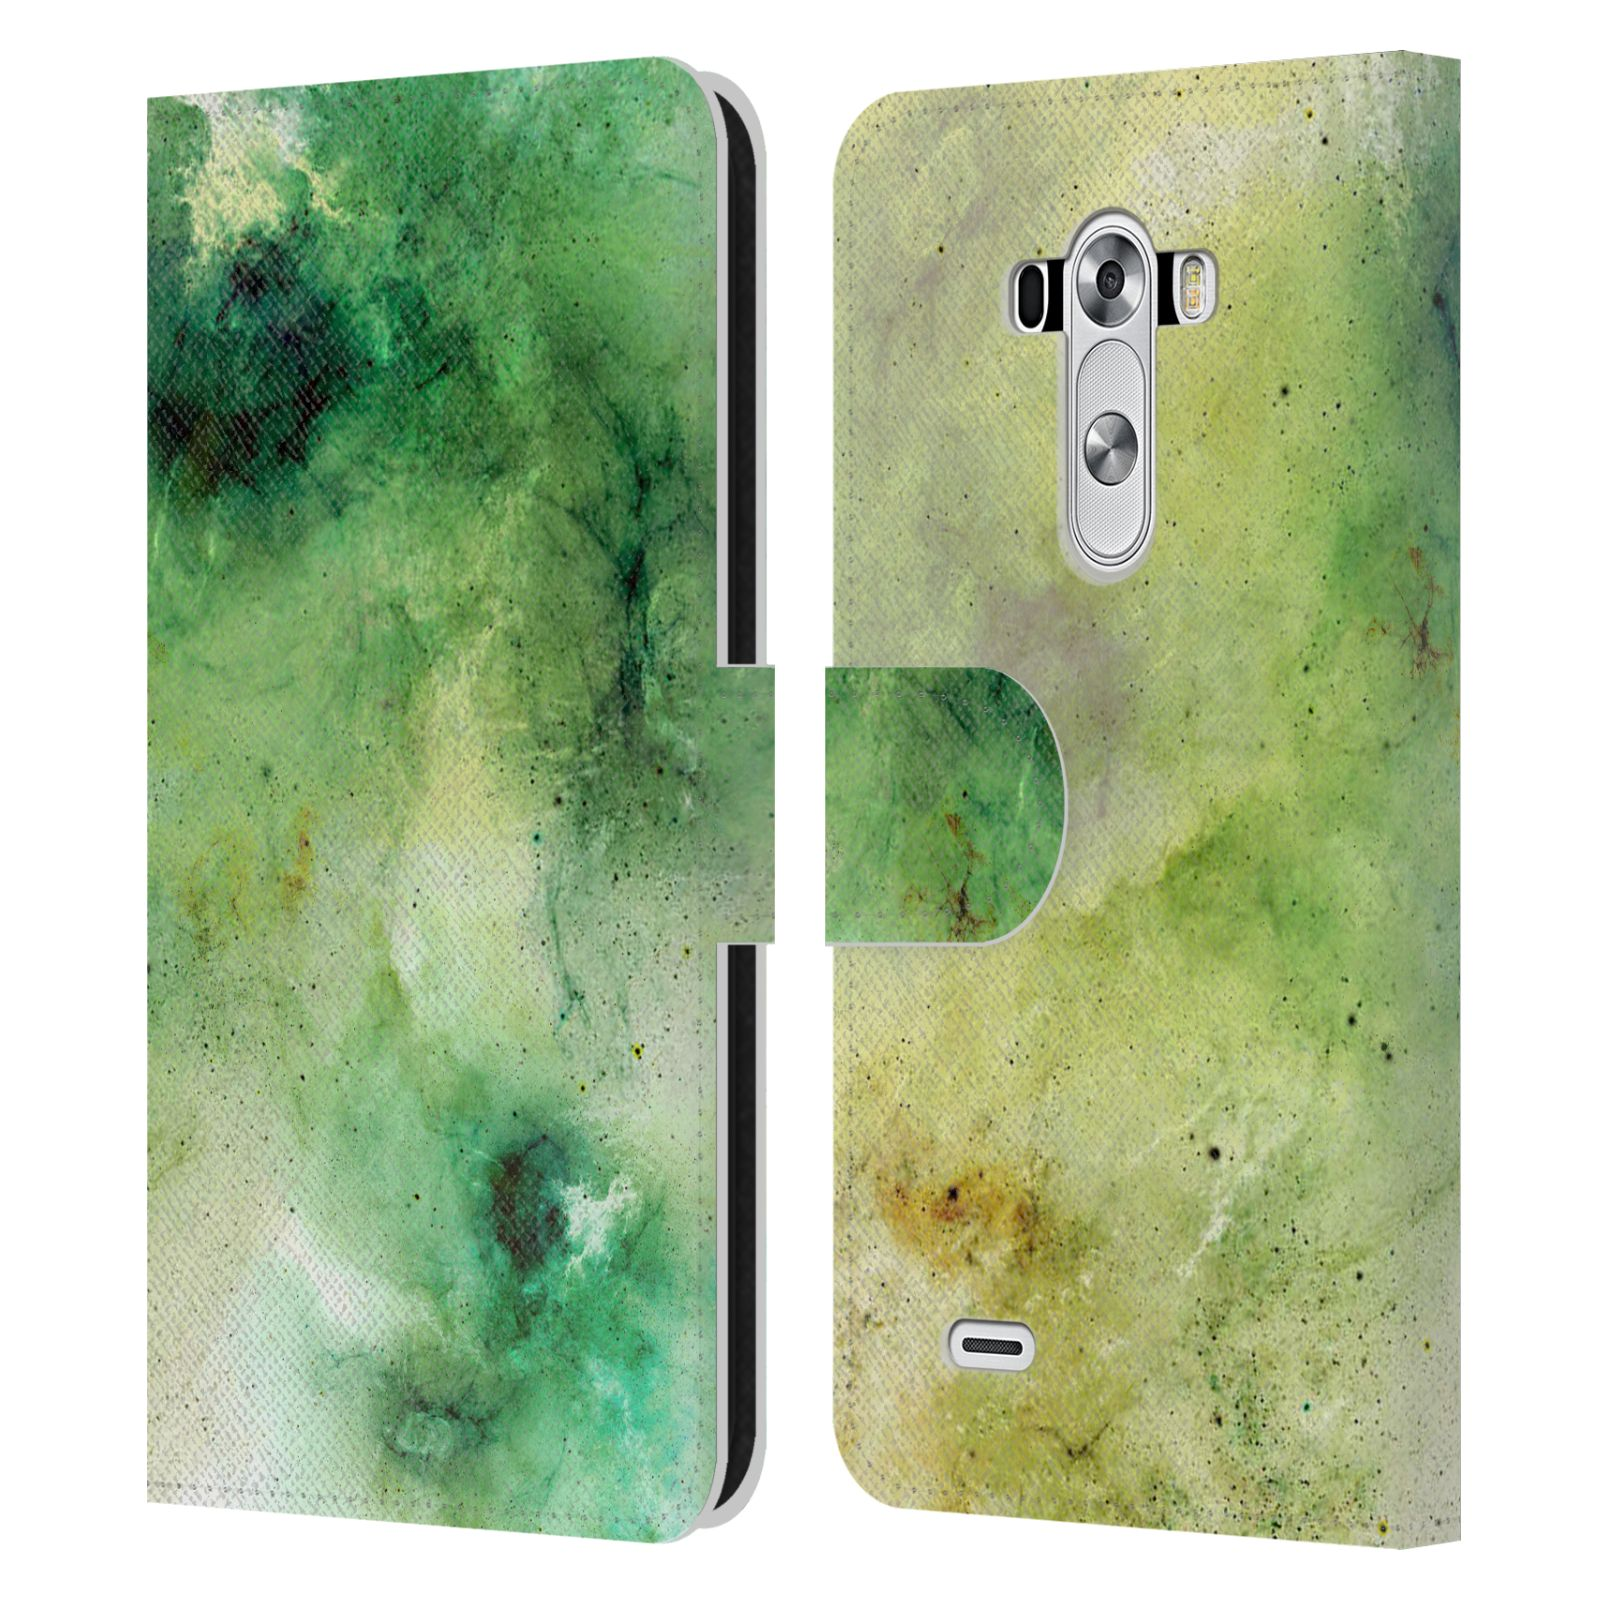 OFFICIAL-BARRUF-GALAXY-LEATHER-BOOK-WALLET-CASE-COVER-FOR-LG-PHONES-1